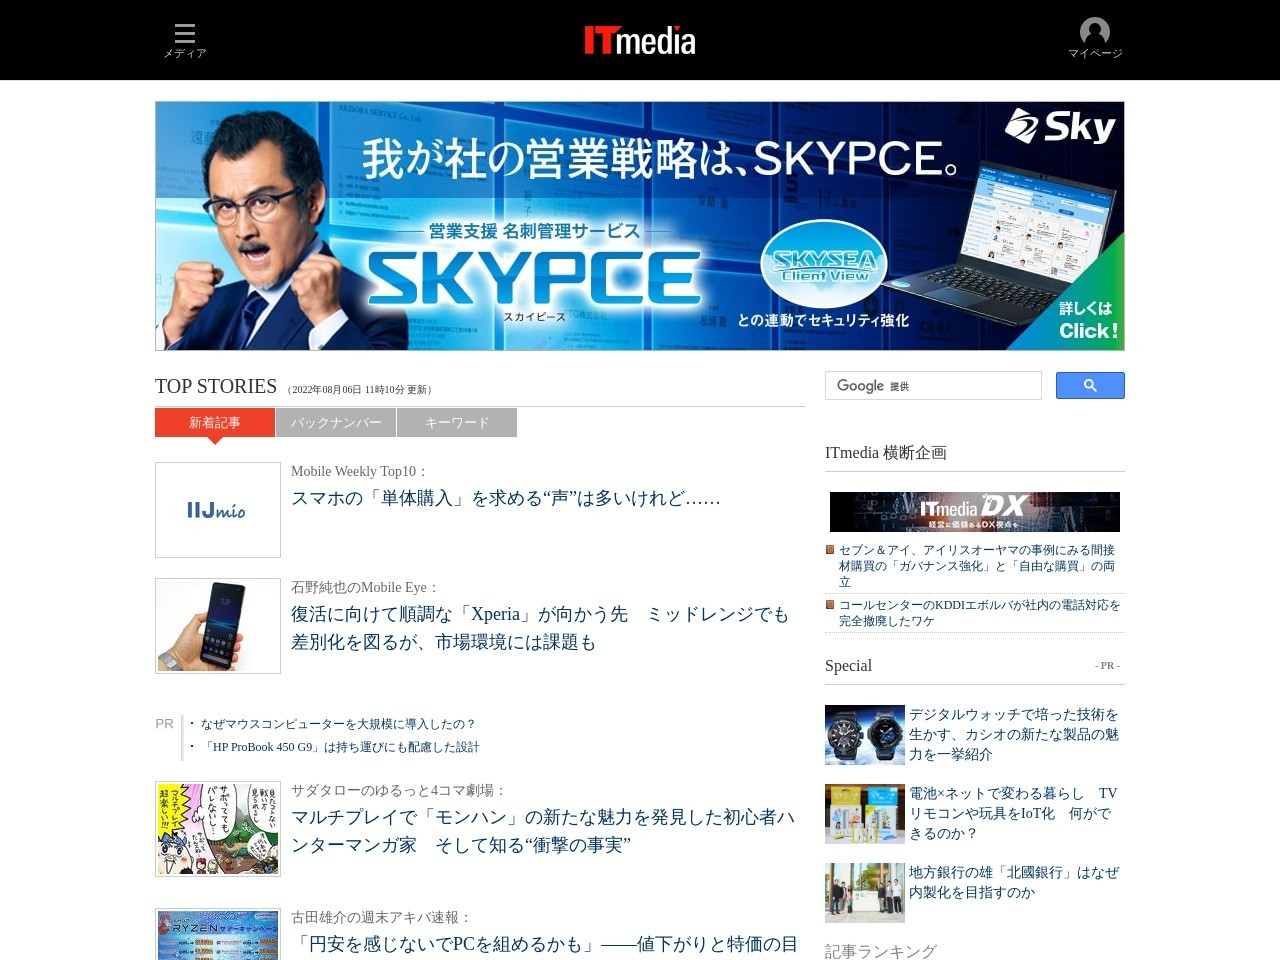 http://www.itmedia.co.jp/news/articles/1209/07/news039.html